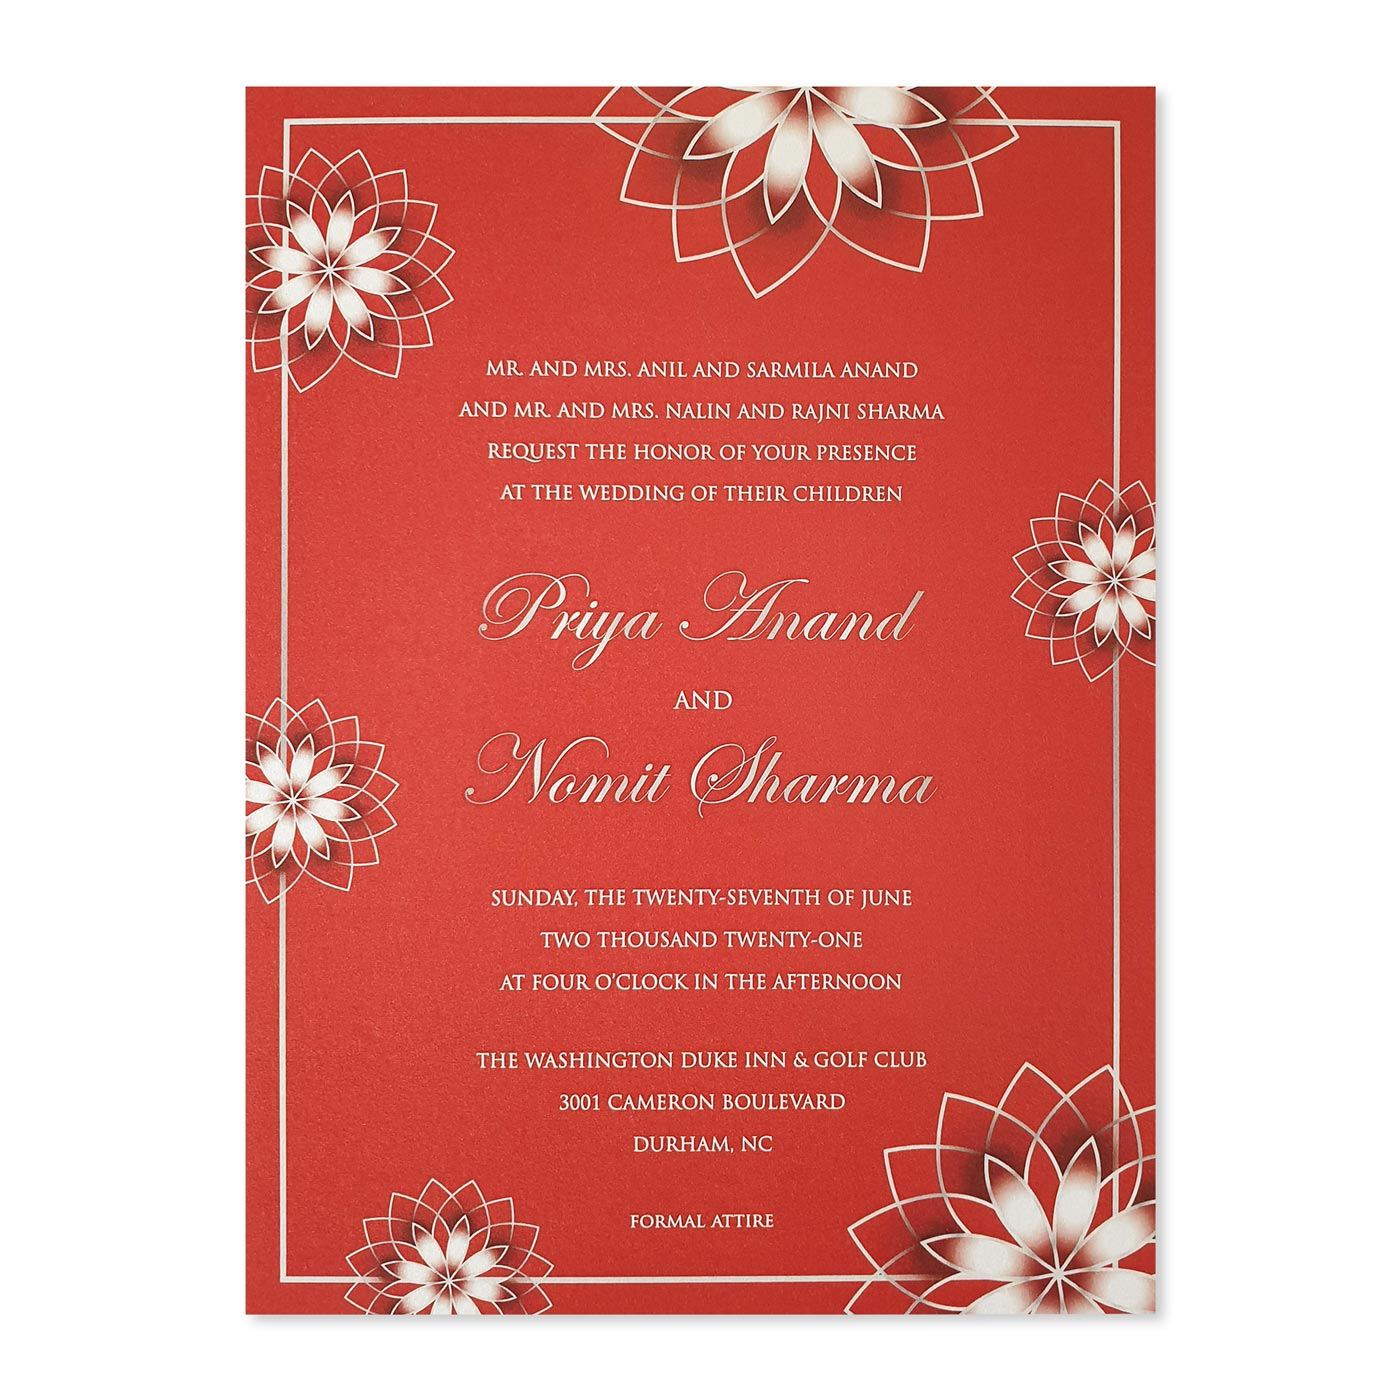 WHITE SHIMMERY FLORAL THEMED WEDDING INVITATION : A-ROSE_OUTLINE - A2zWeddingCards